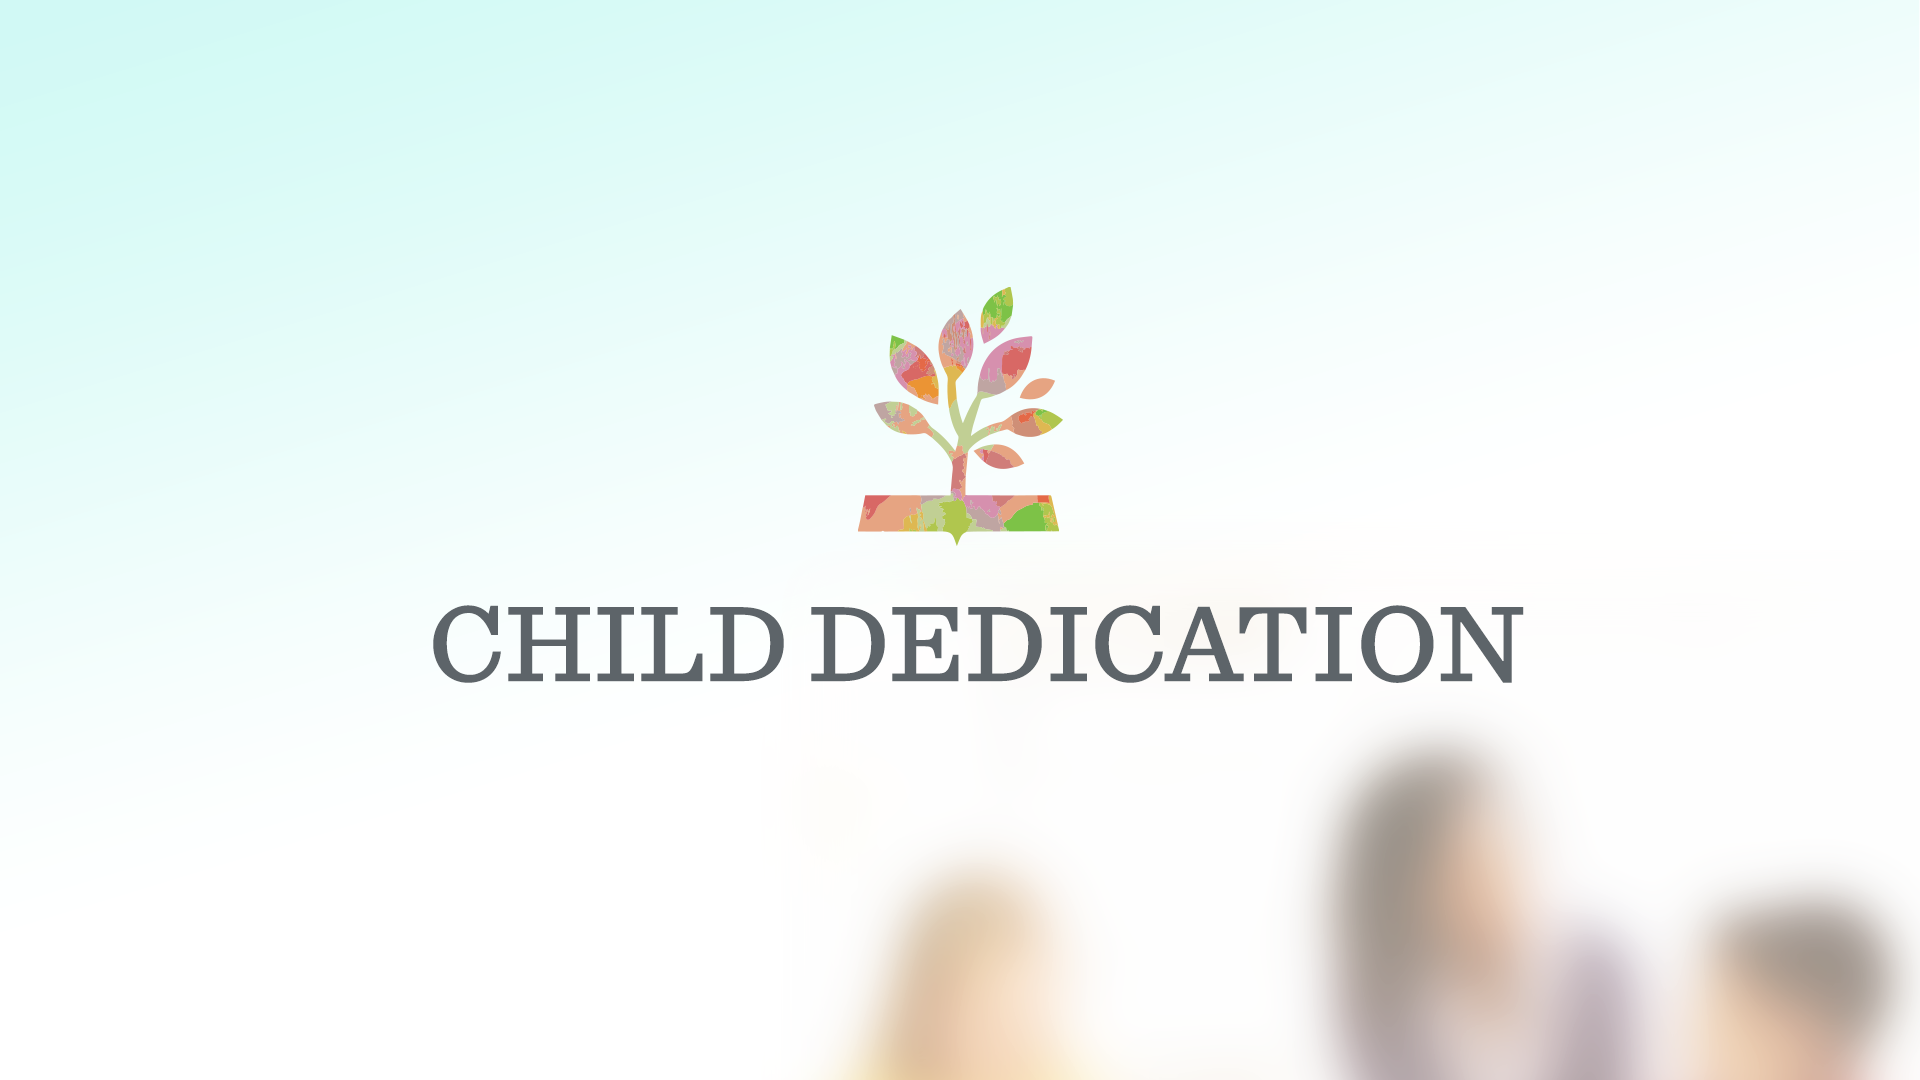 ChildDedication Graphic image